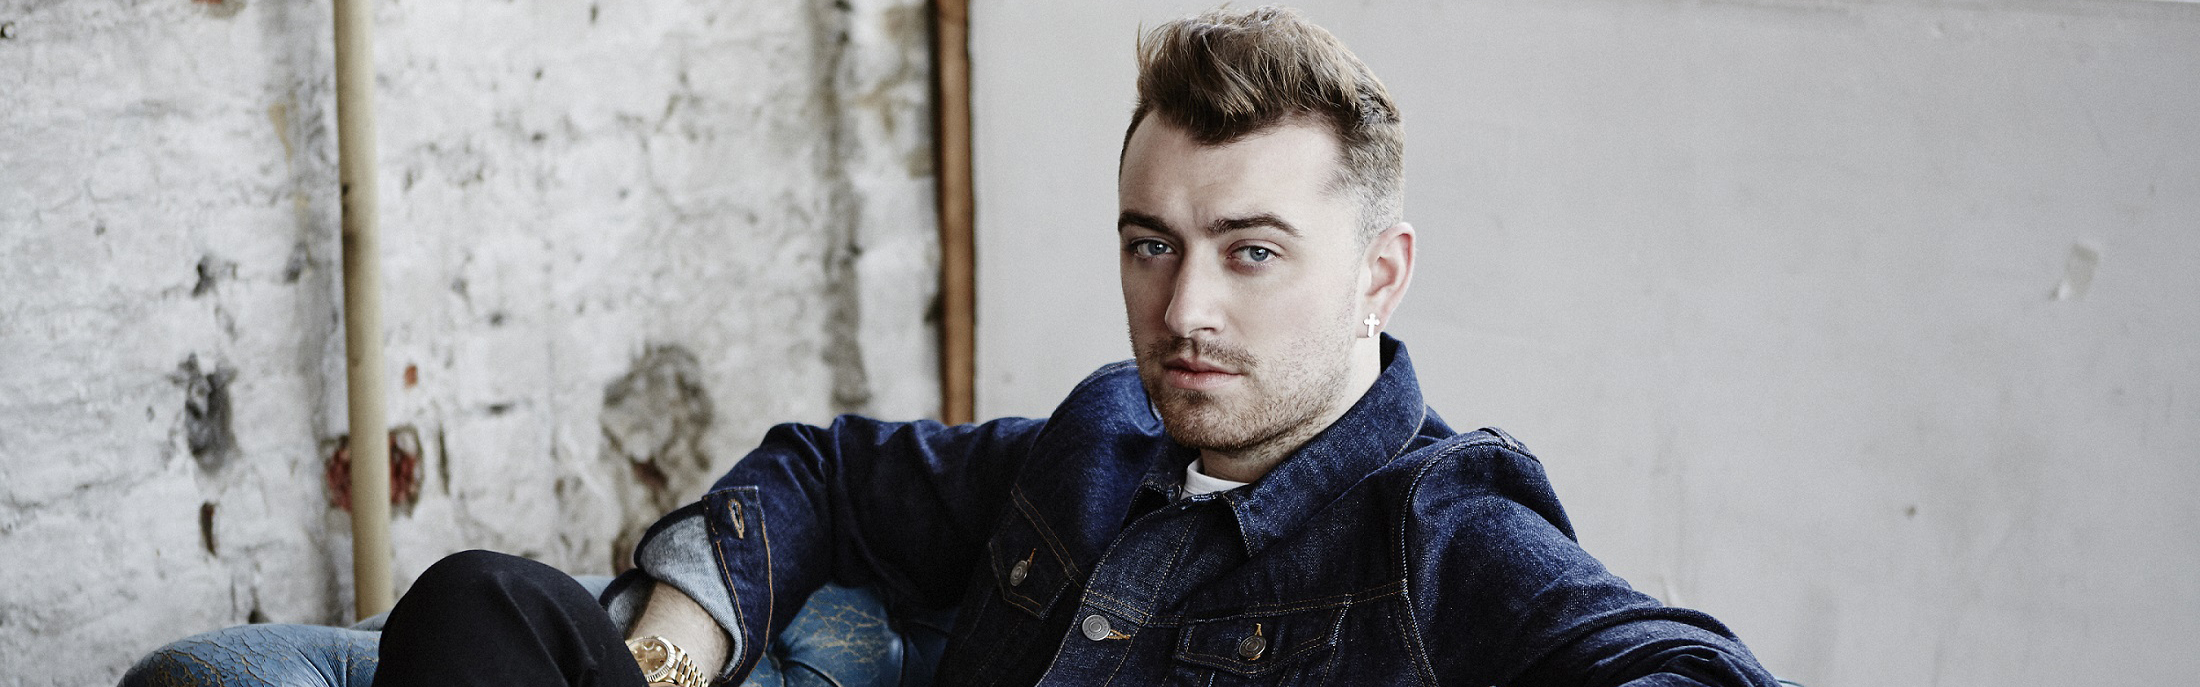 Sam-Smith-2015-Press-Shots-Image-1-LOW-RES